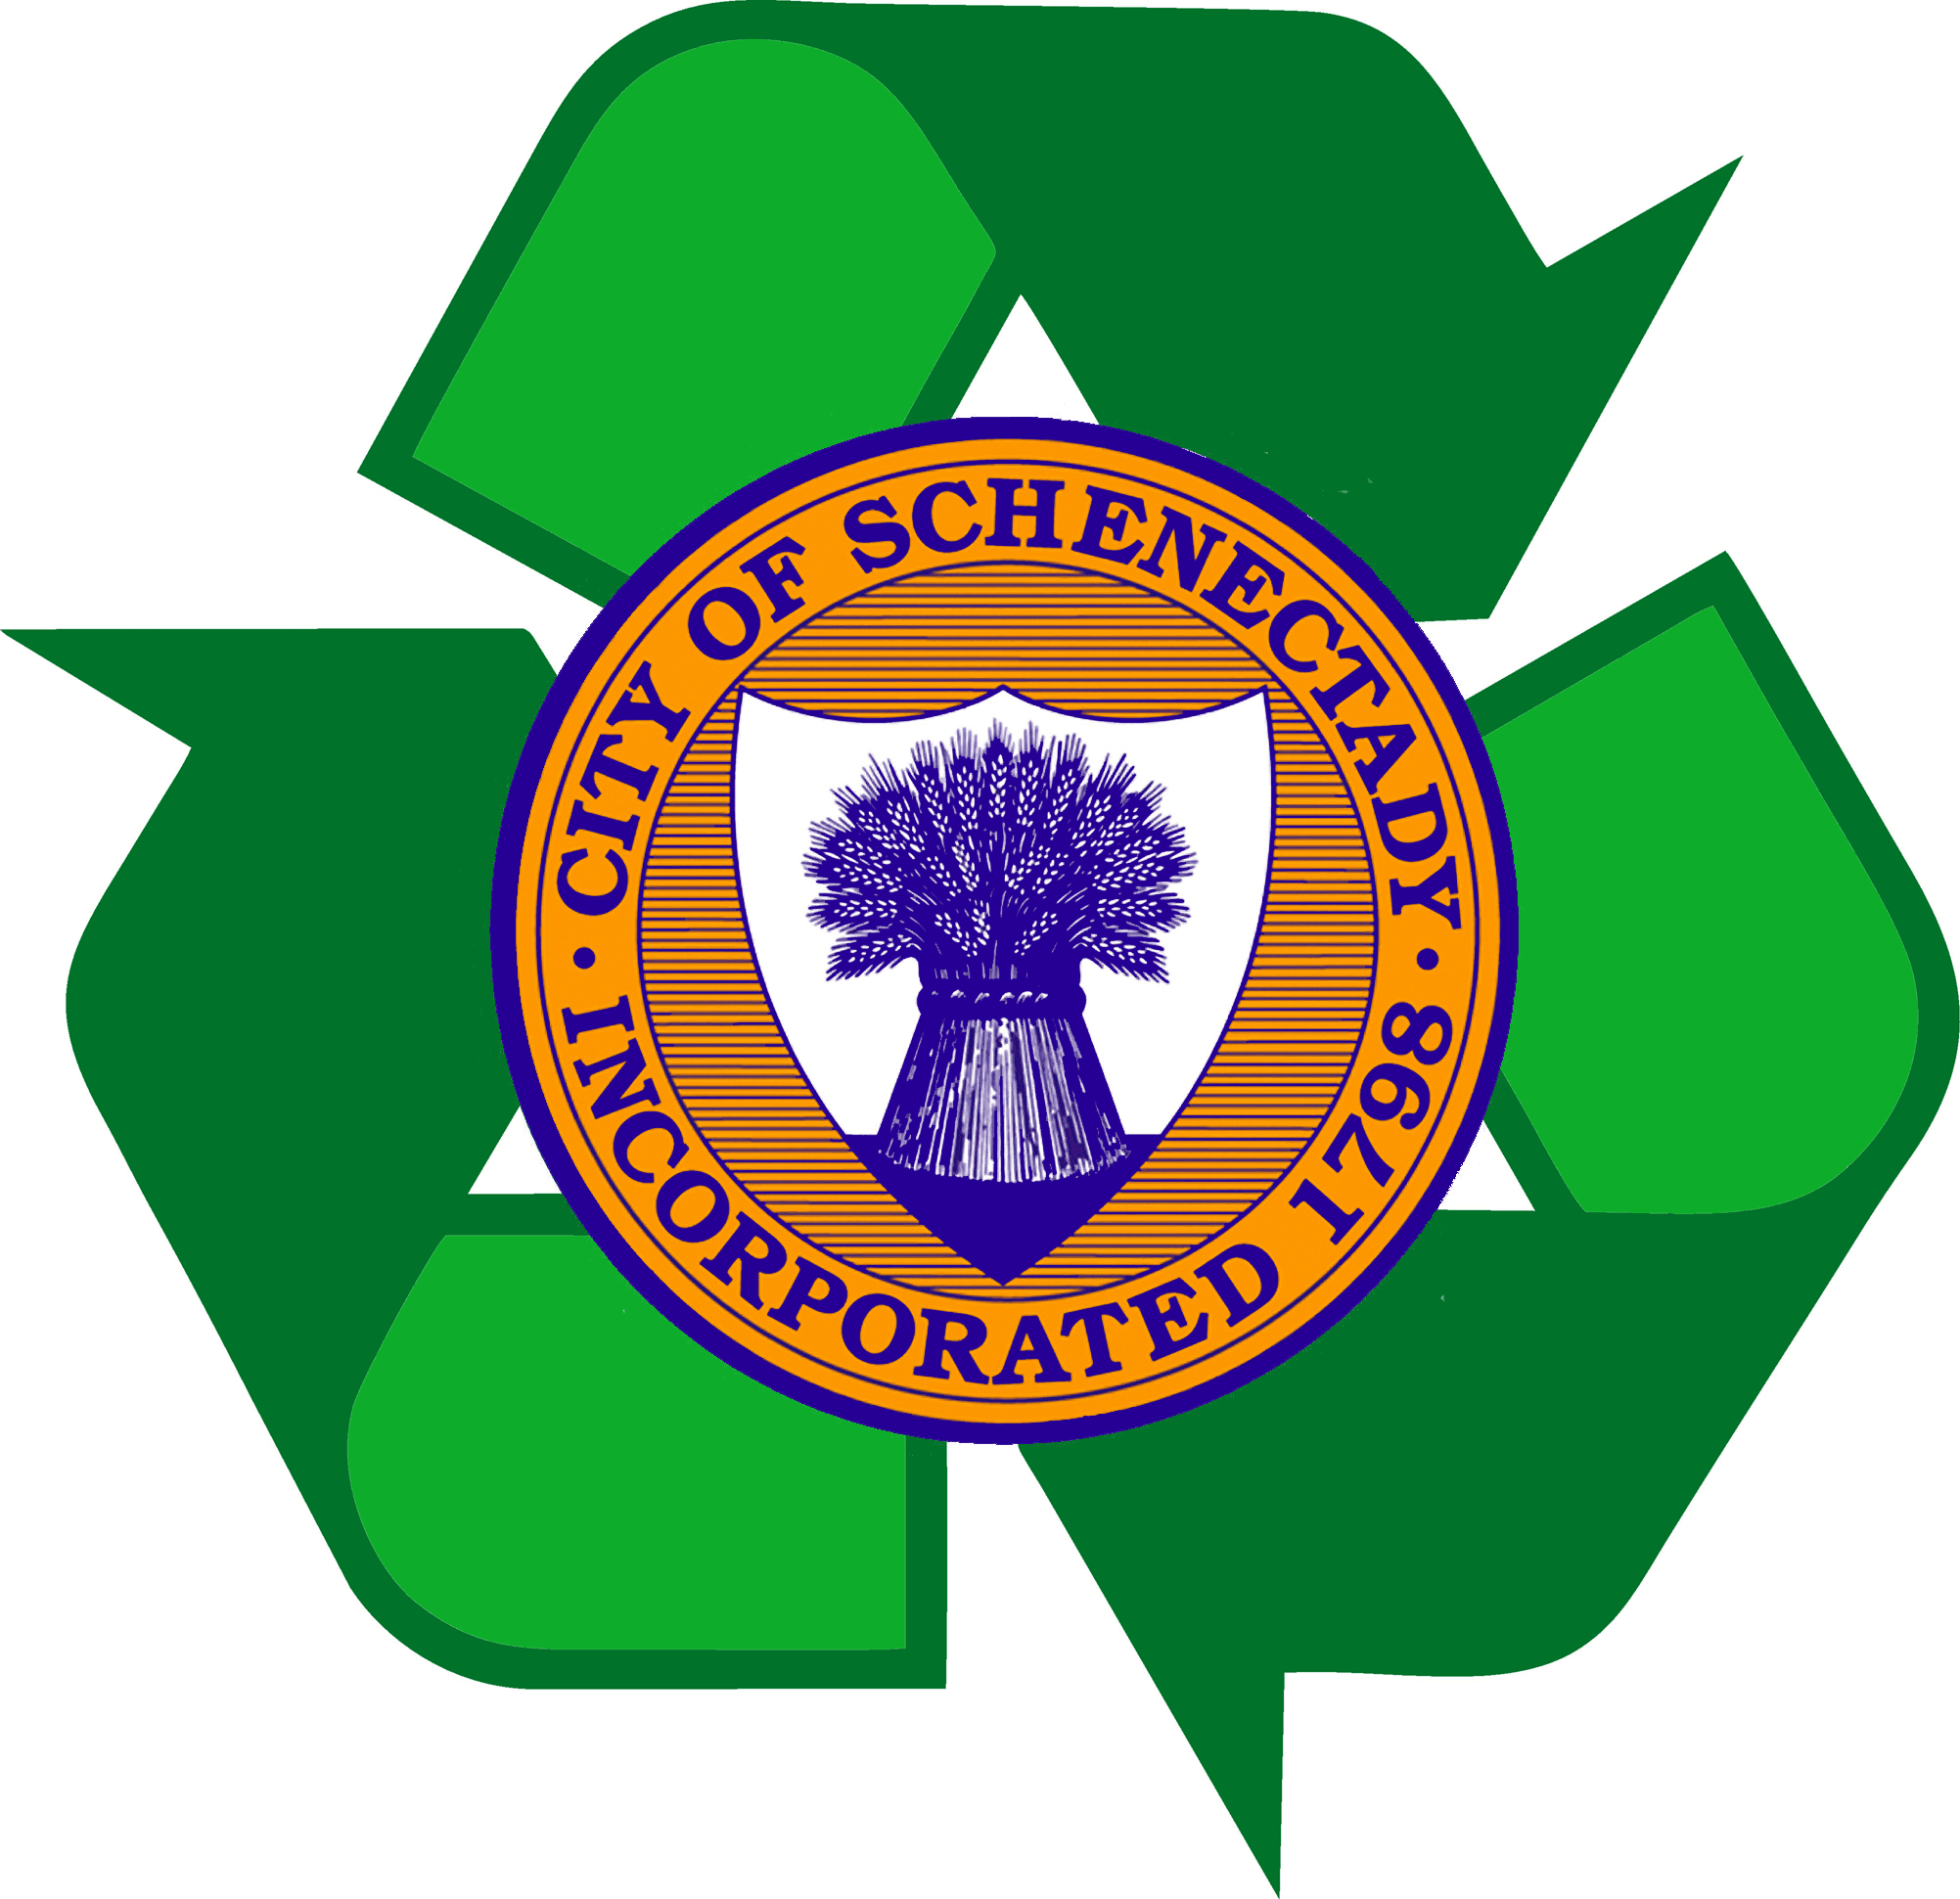 Logo of program and city seal